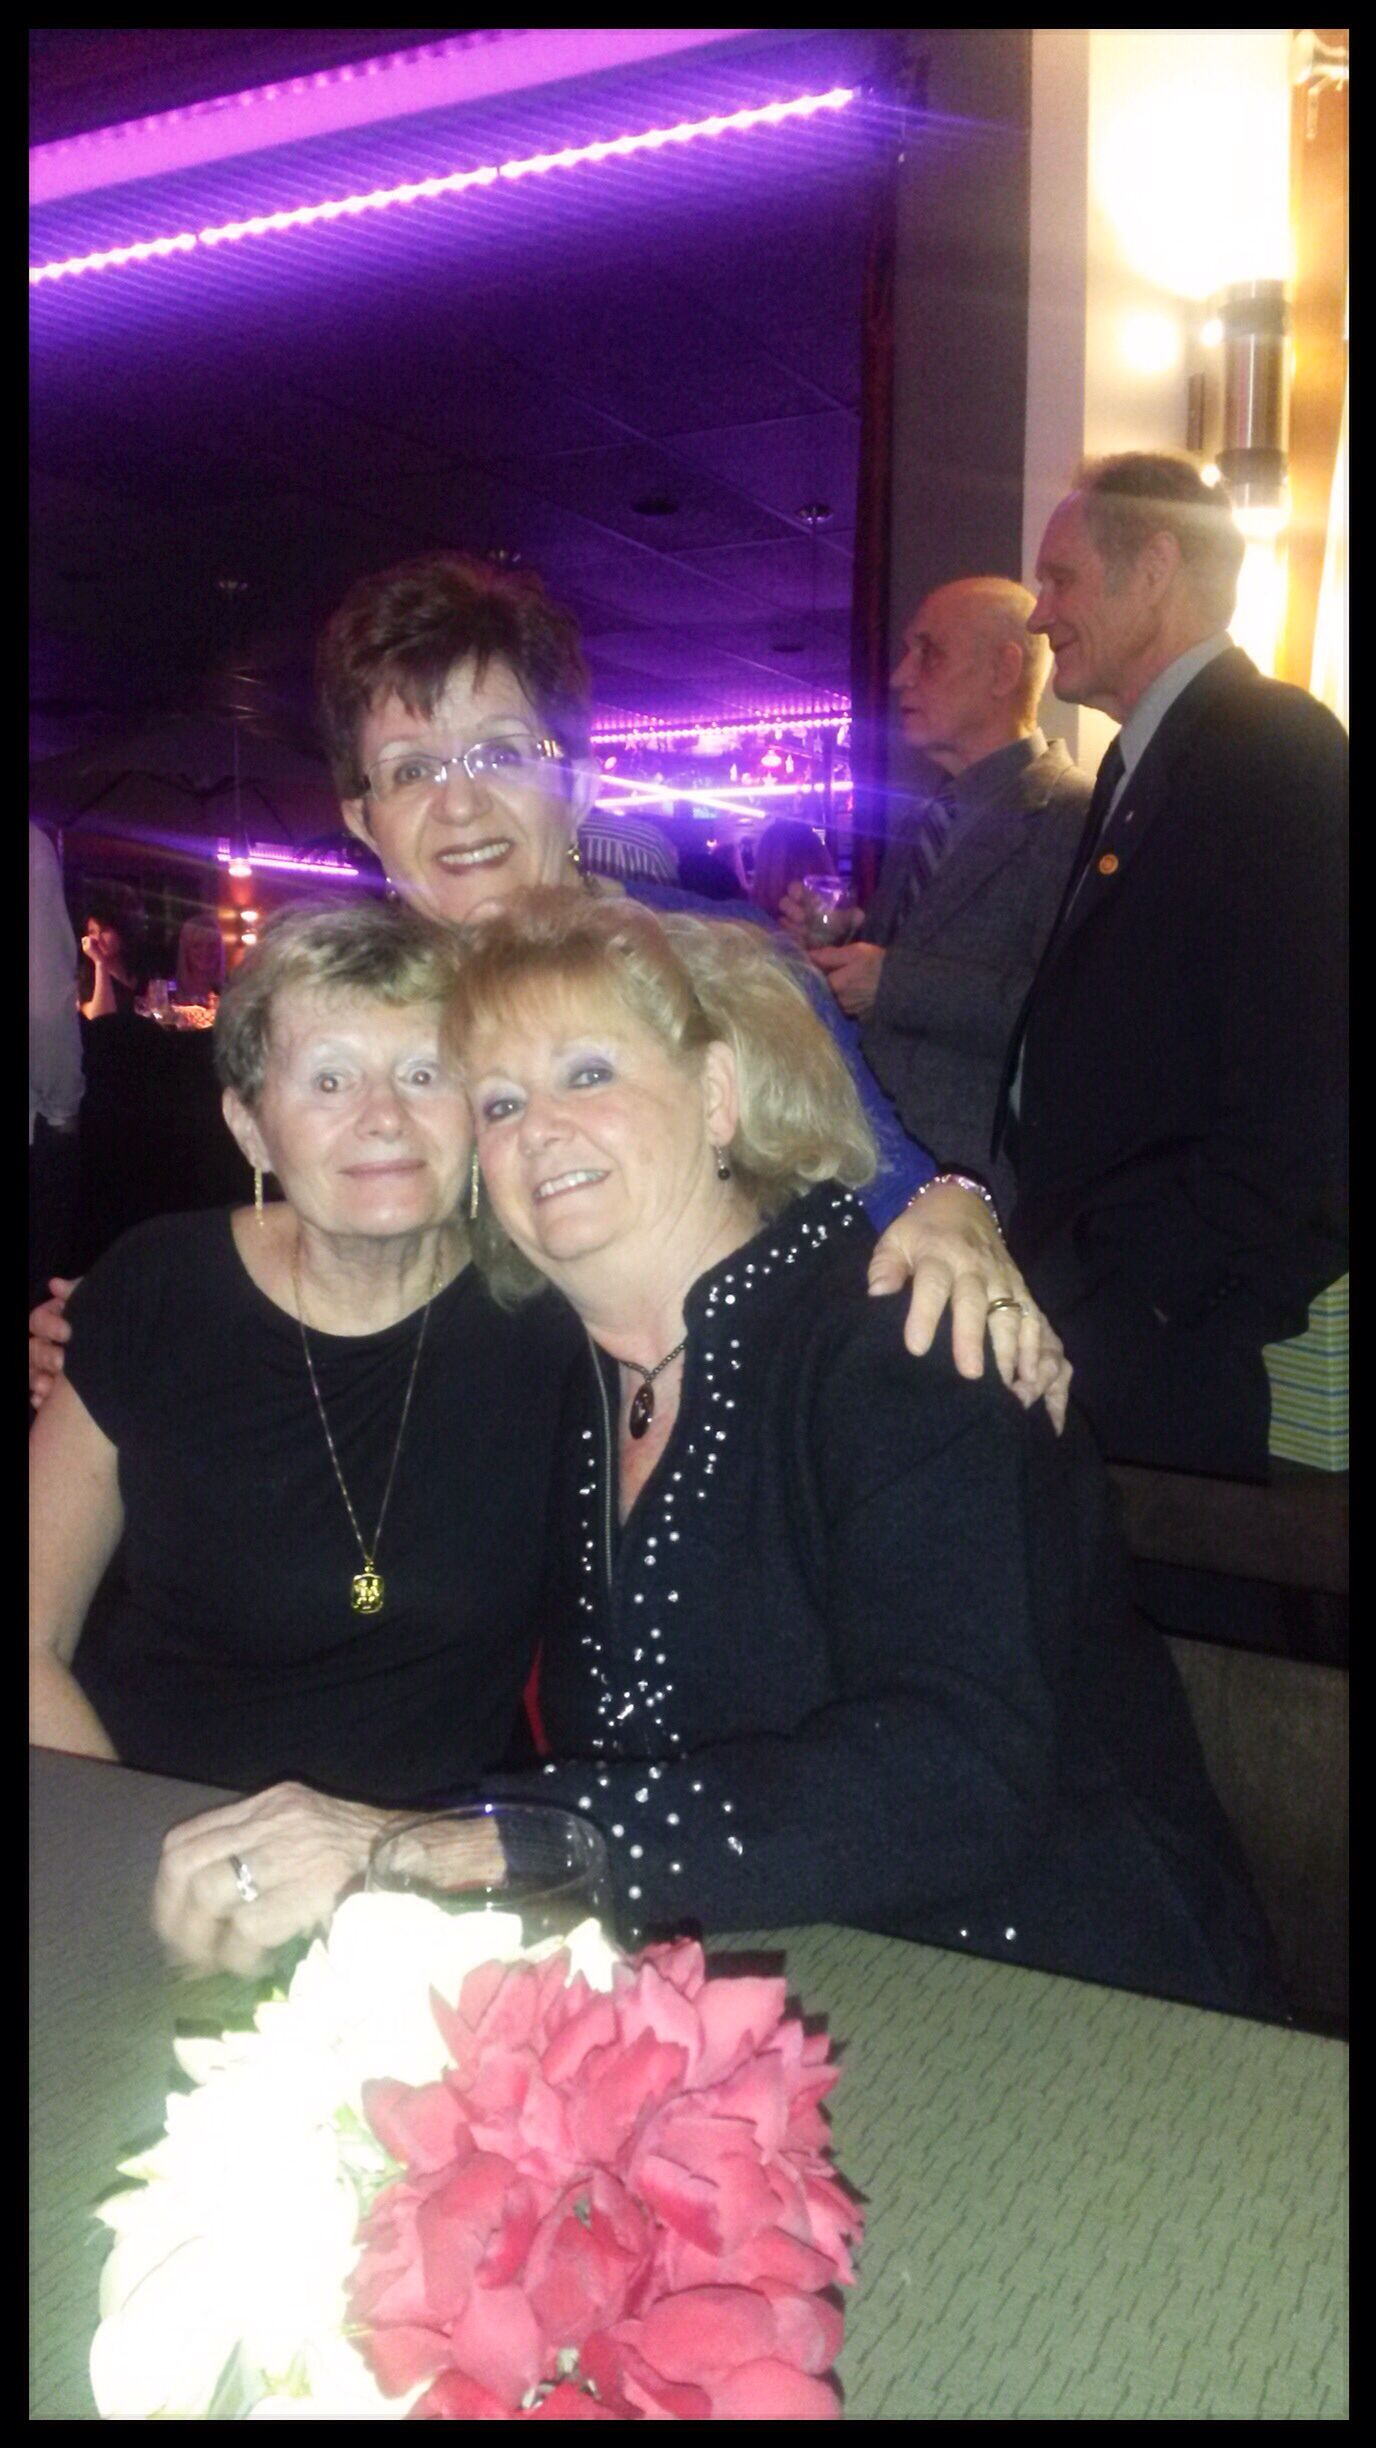 The Three Besties - Candy, Ding & Susan at Klaus's birthday.